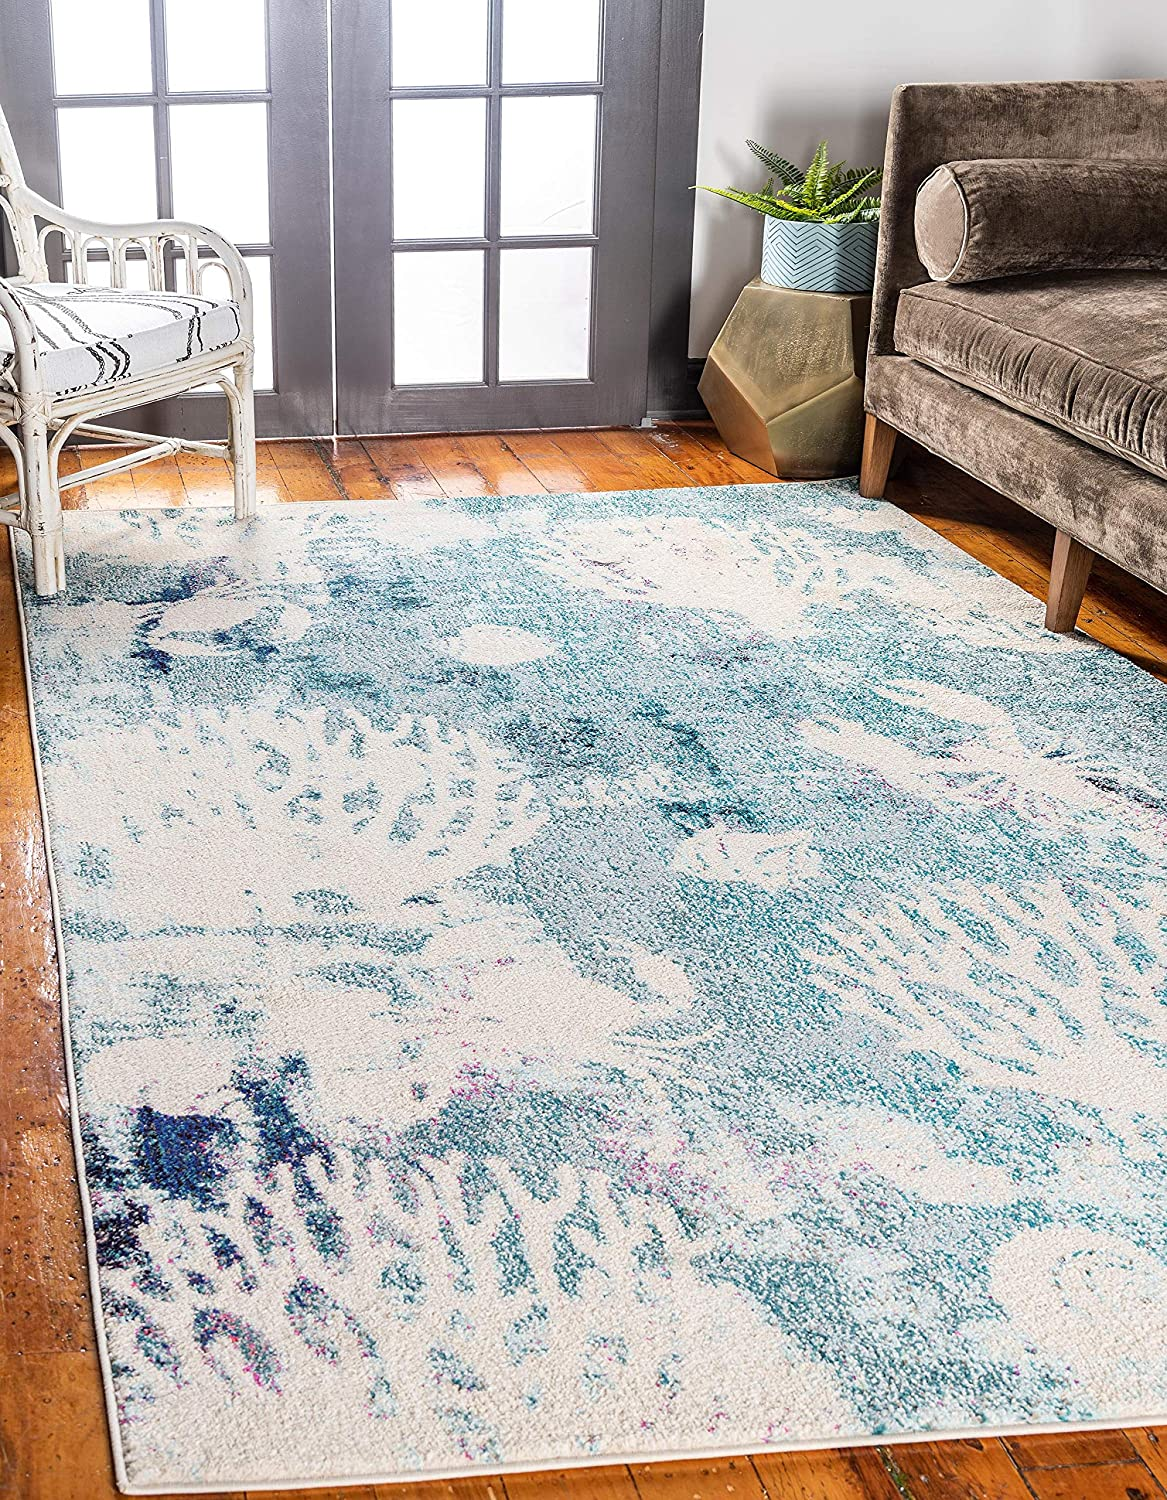 Unique Loom Positano Collection Coastal Modern Coral Lobster Shells Rug_CAP003, 8' 0 x 10' 0, Light Blue/Beige